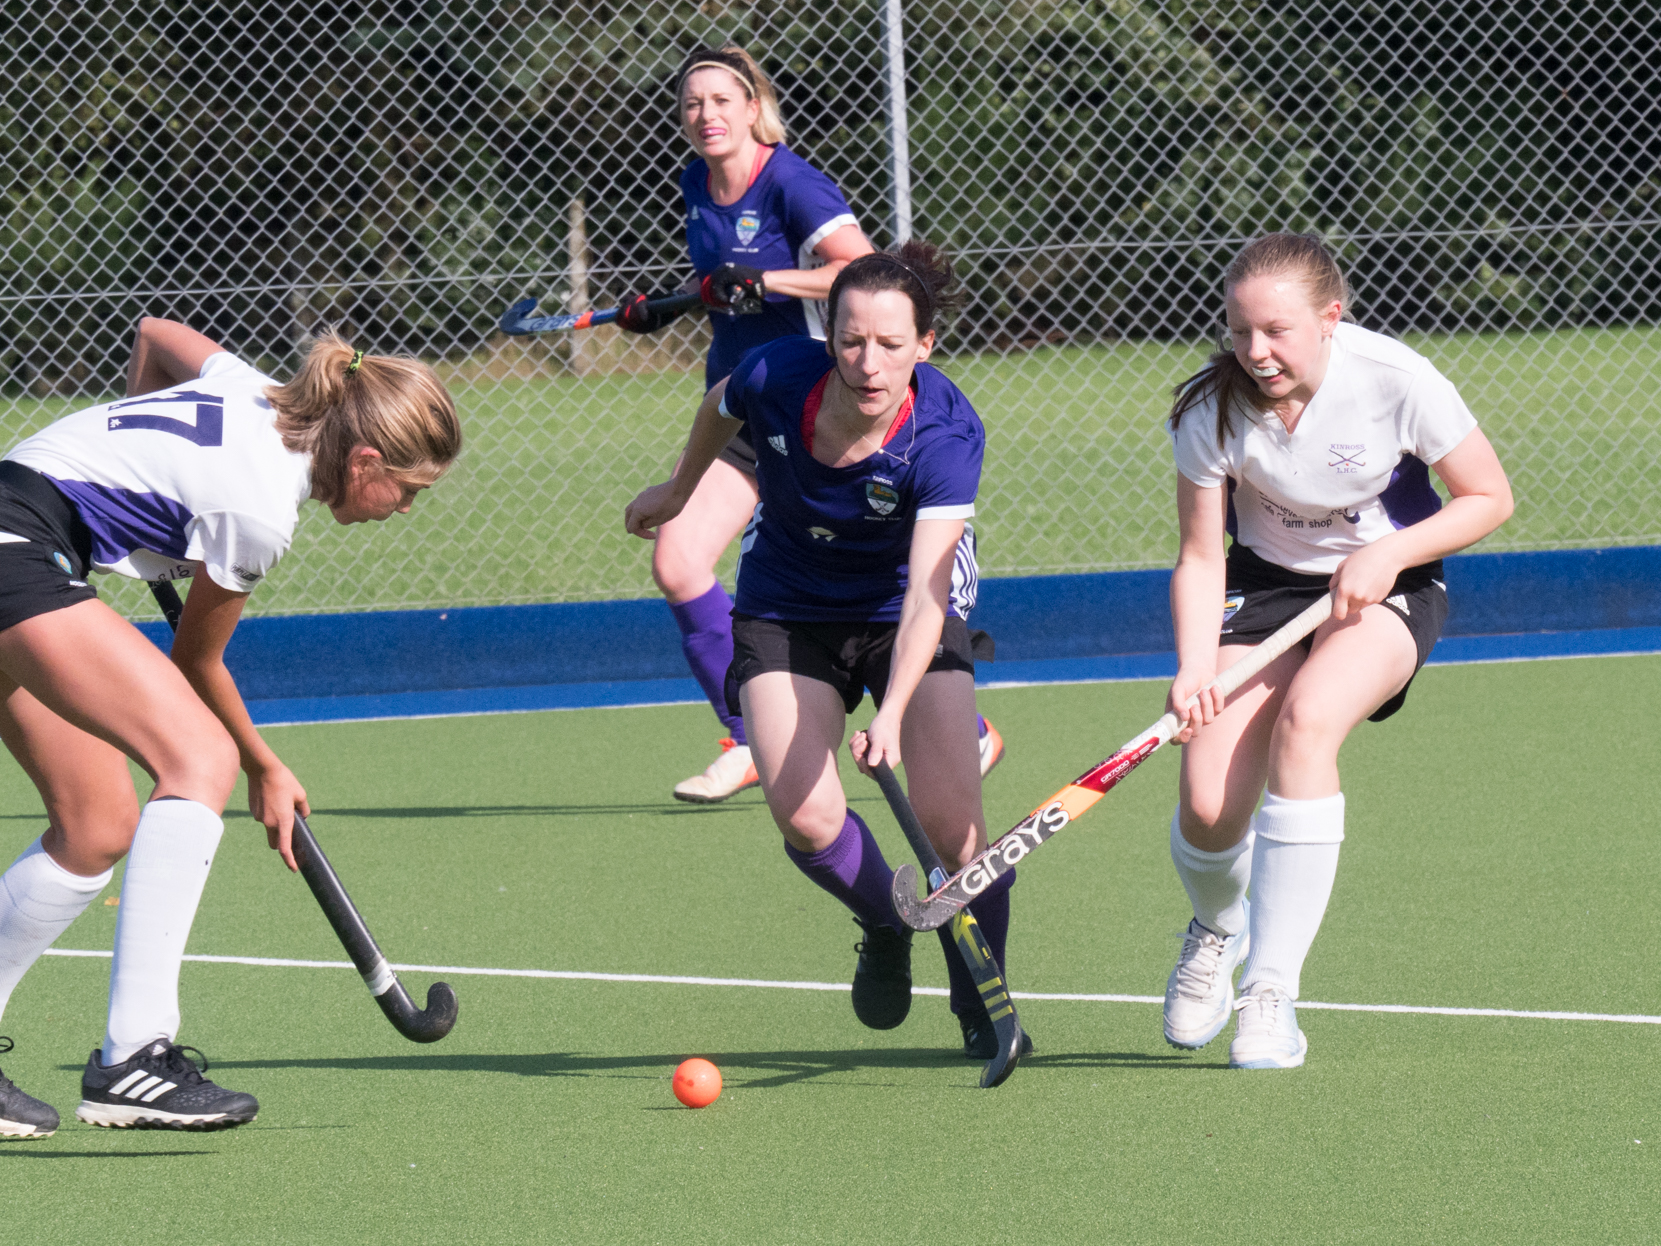 Ladies 3s vs 2s Aug 31st 2019-20.jpg